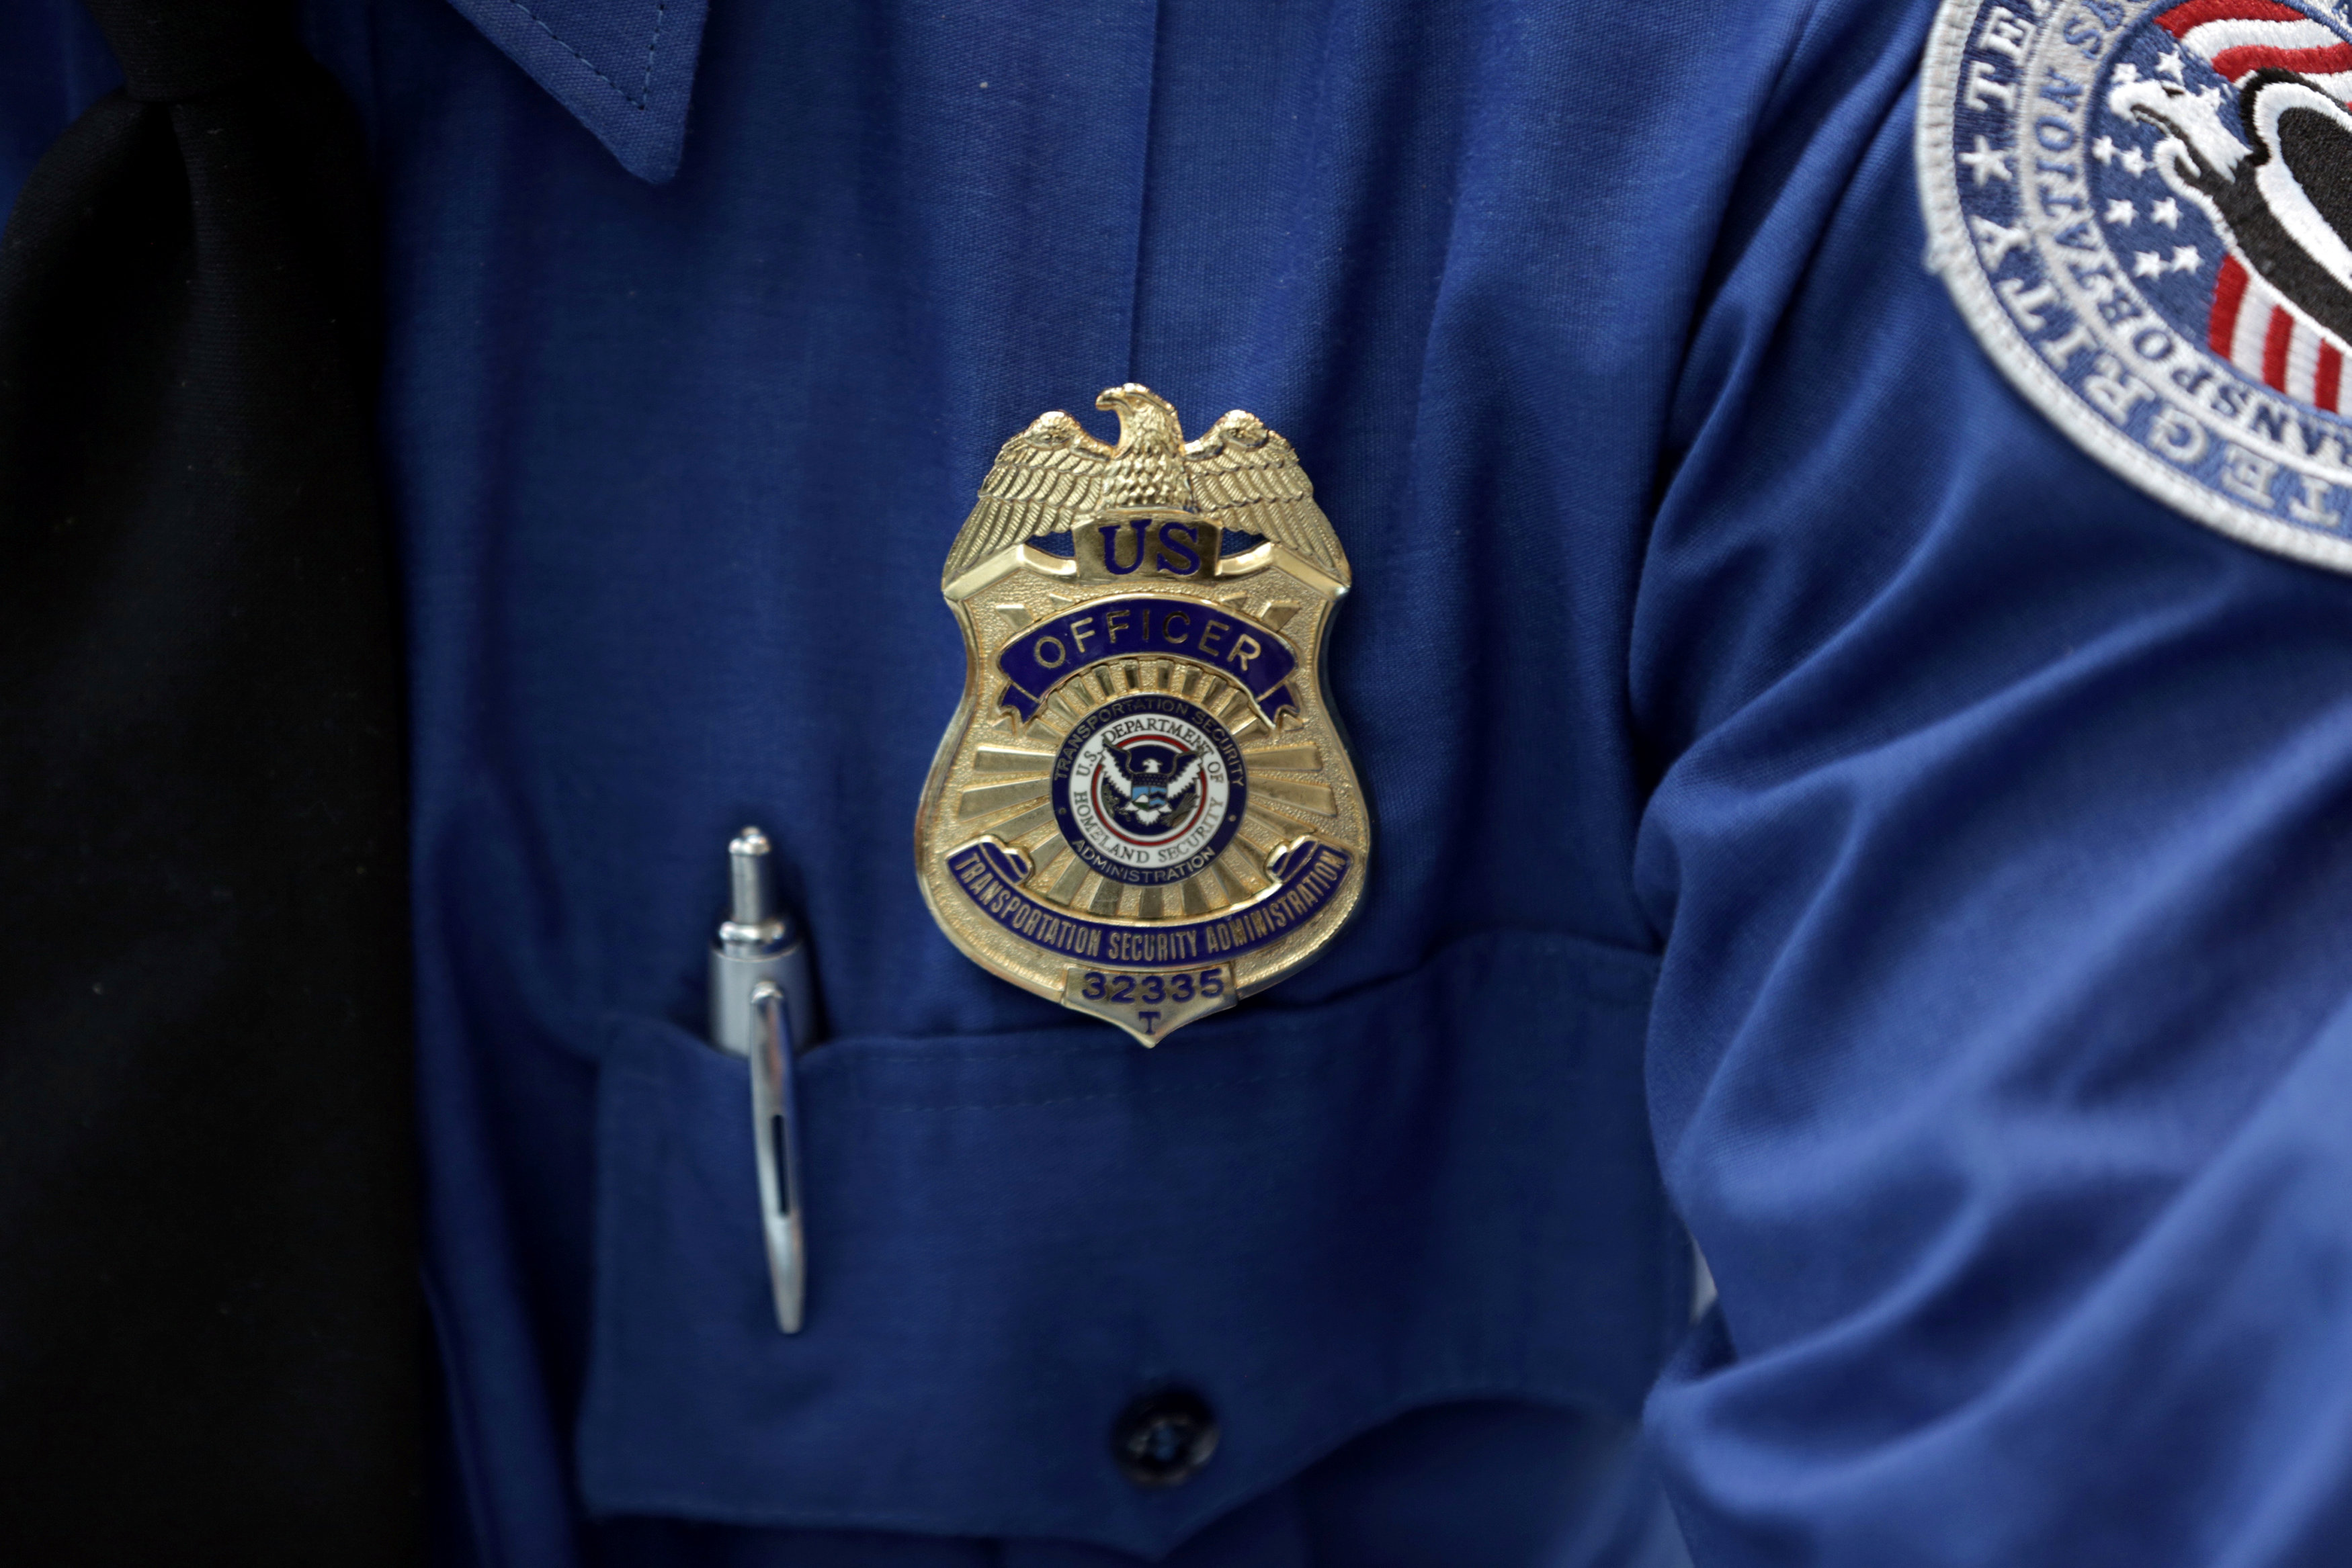 FILE PHOTO: A Transportation Security Administration (TSA) official wears a TSA badge at Terminal 4 of JFK airport in New York City, U.S., May 17, 2017. REUTERS/Joe Penney/File Photo